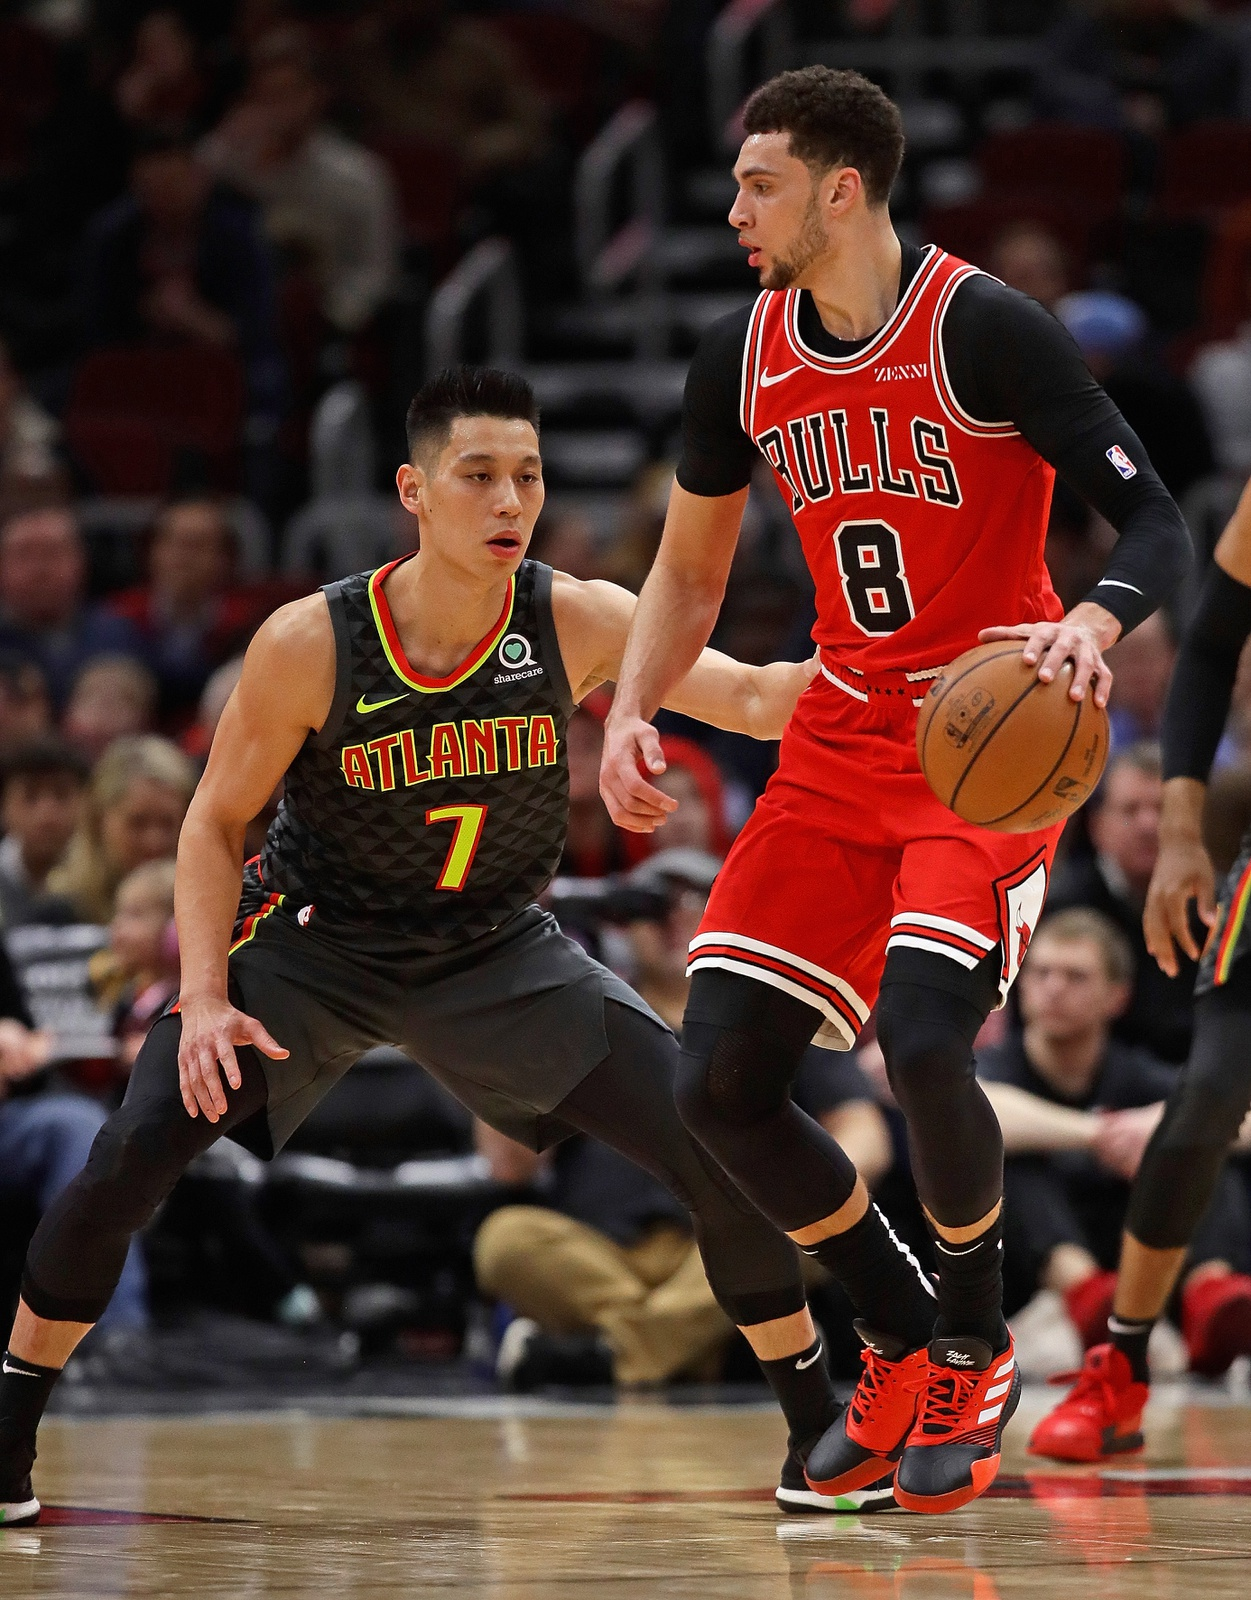 b80a7b1e5133 Zach LaVine  8 of the Chicago Bulls moves against Jeremy Lin  7 of the